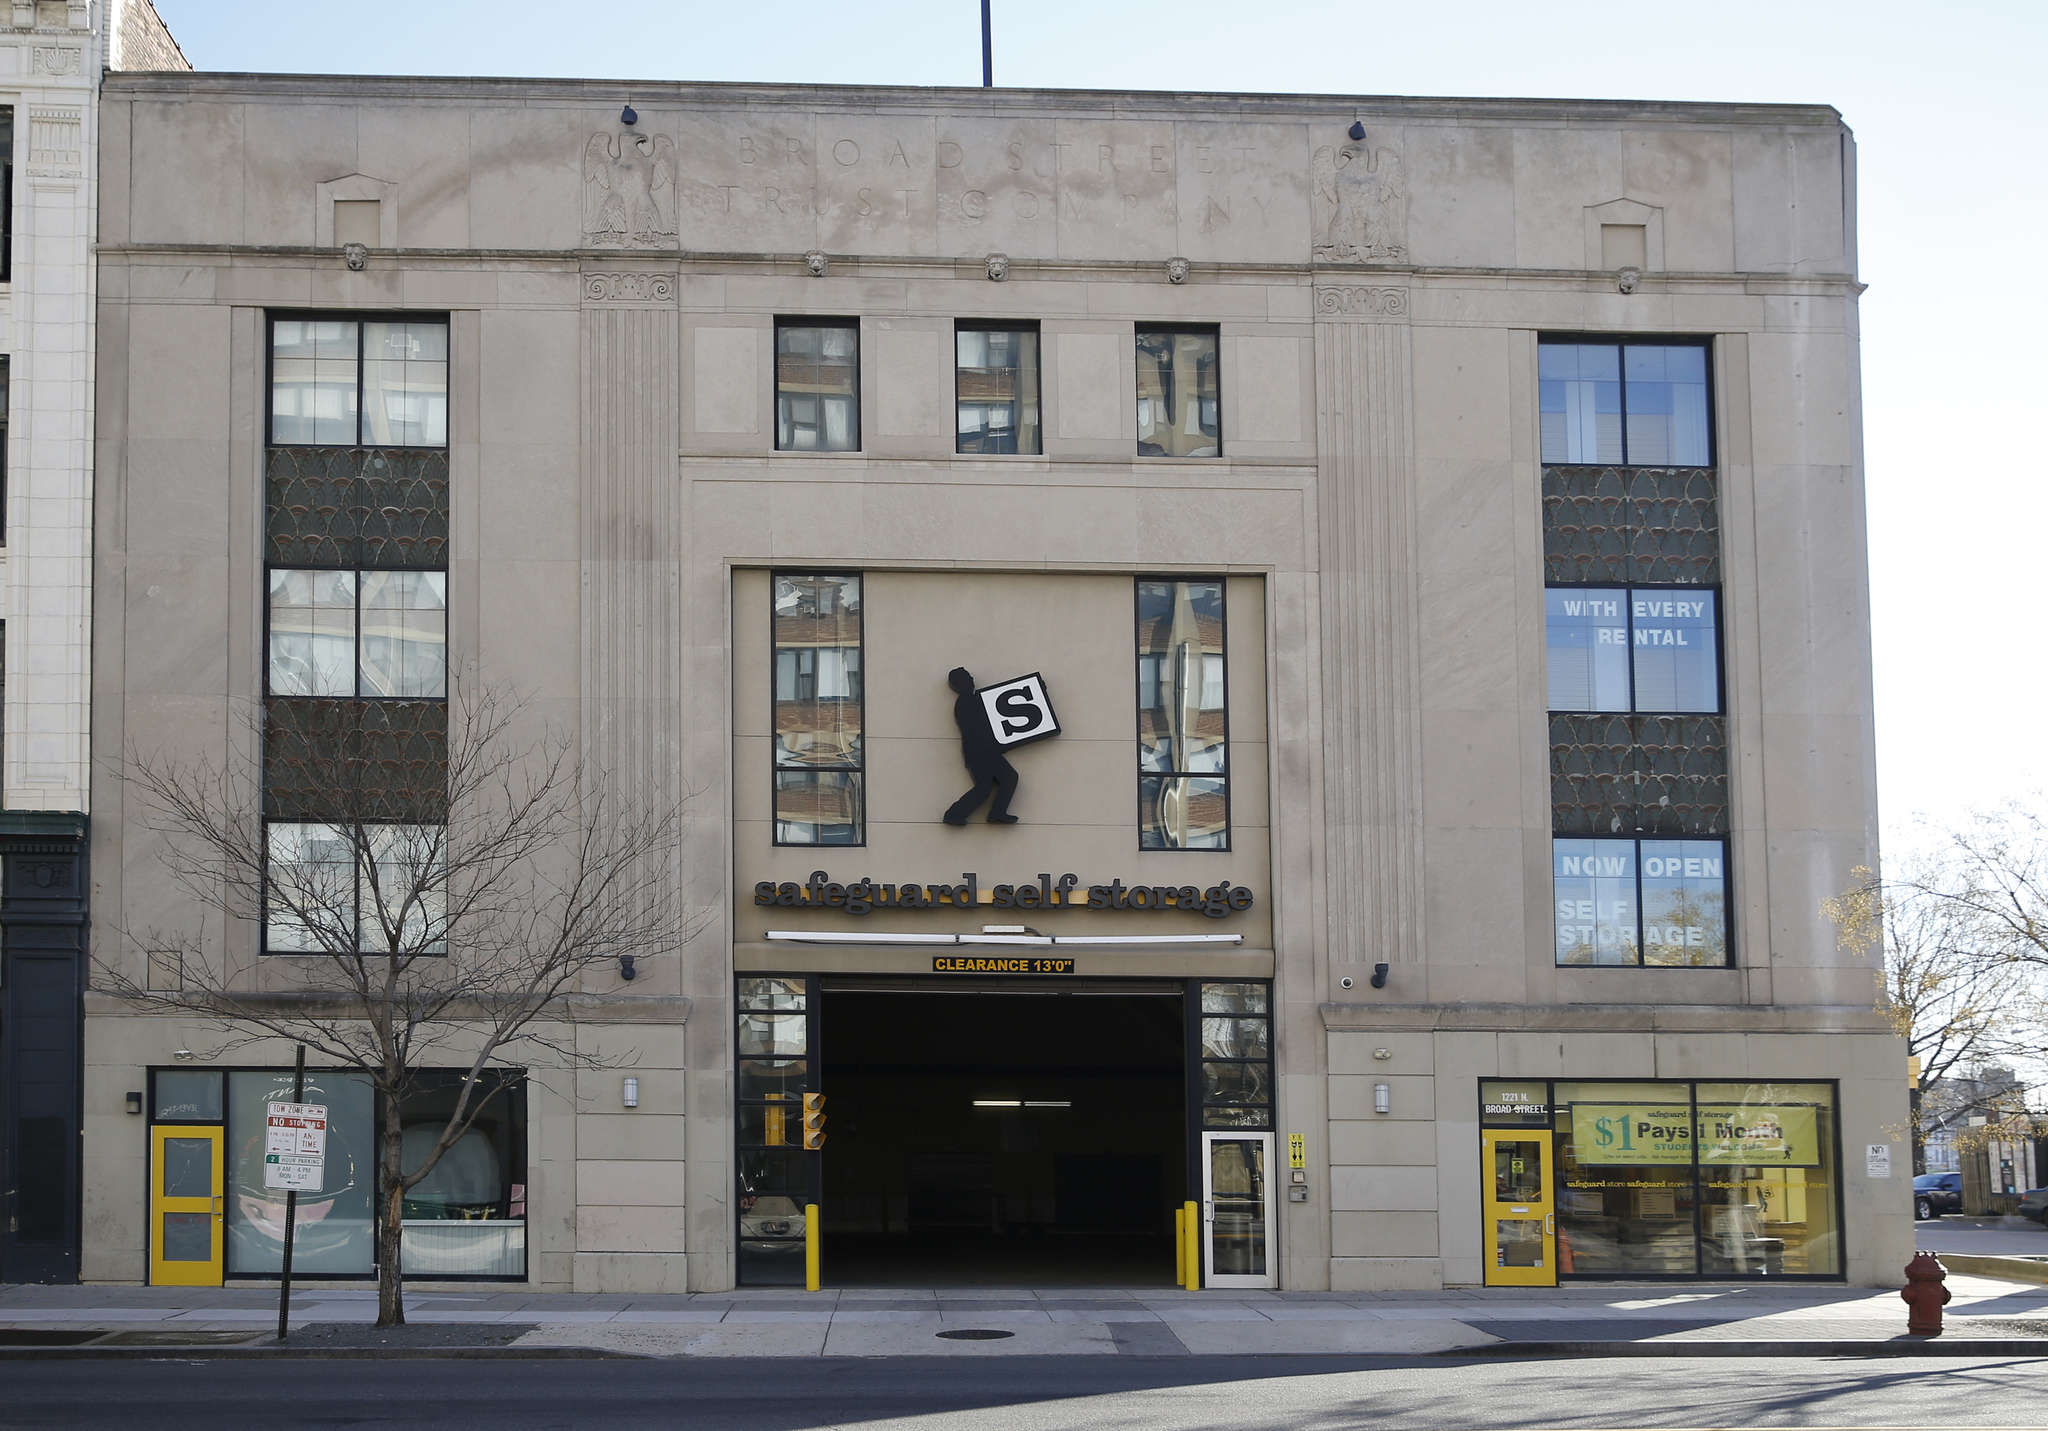 The Broad Street Trust Co. Building on North Broad Street was designed by Ritter & Shay and built in 1927. The design shows a transition to art deco.